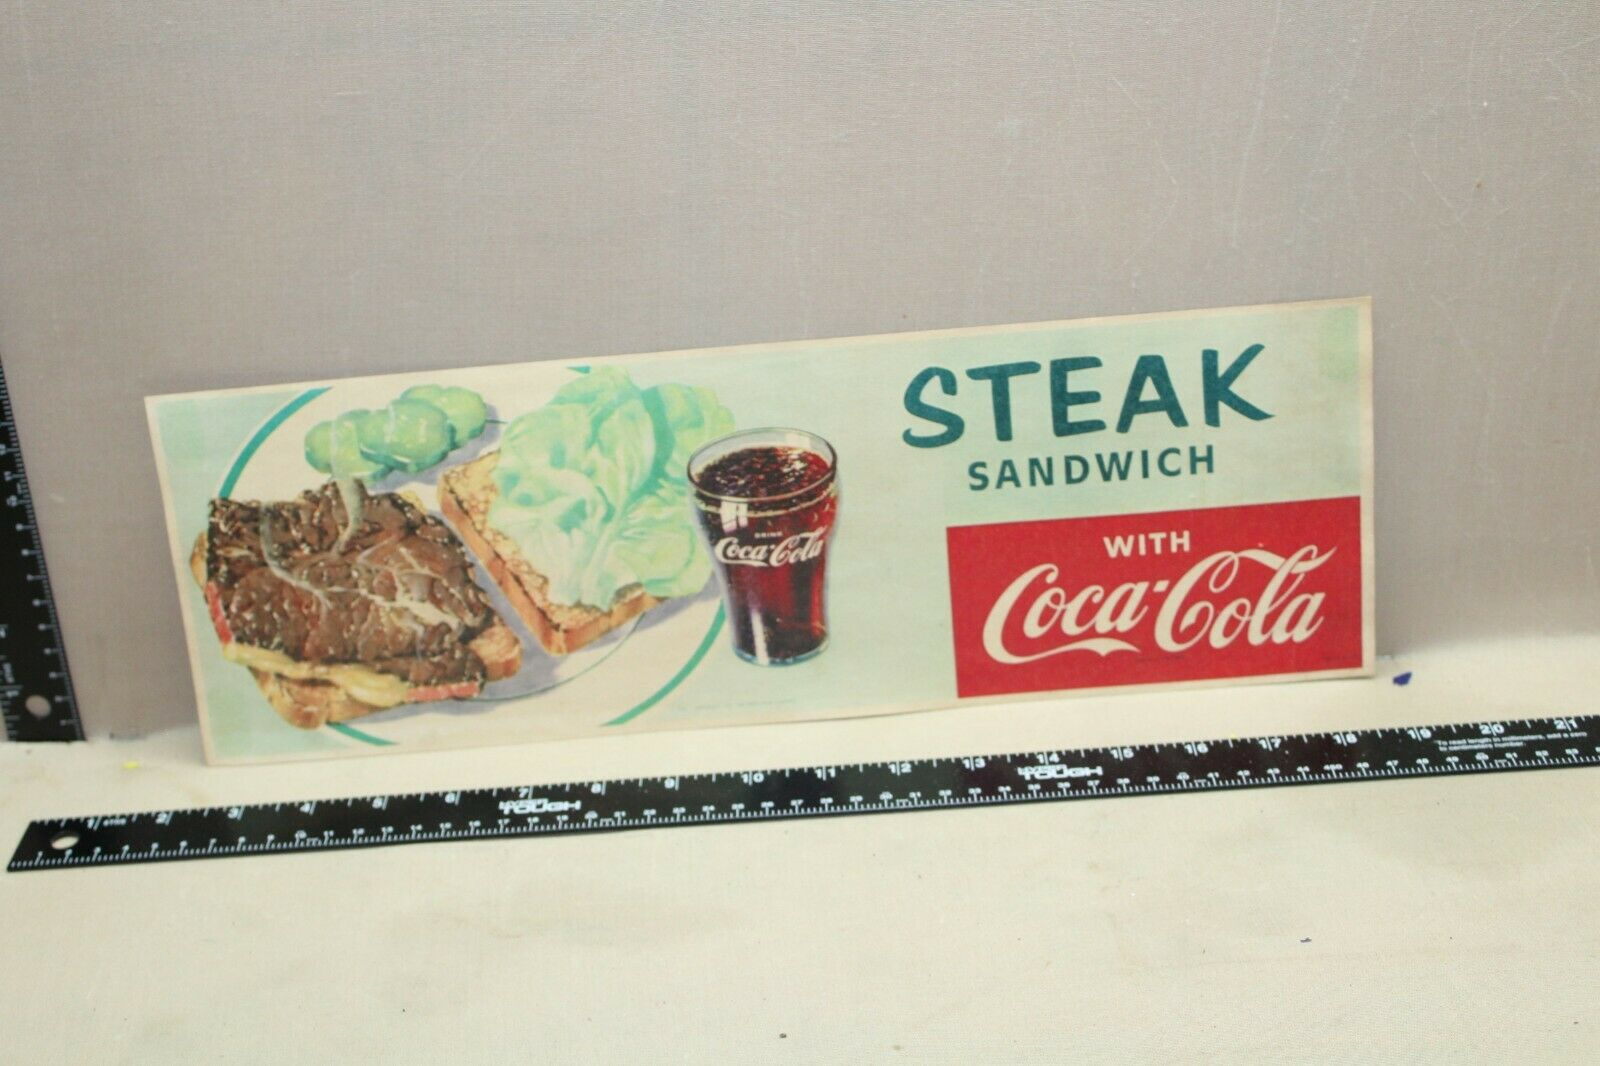 RARE 1957 COCA COLA STEAK SANDWICH DINER DISPLAY SIGN DRIVE IN RESTAURANT GAS  - $0.99